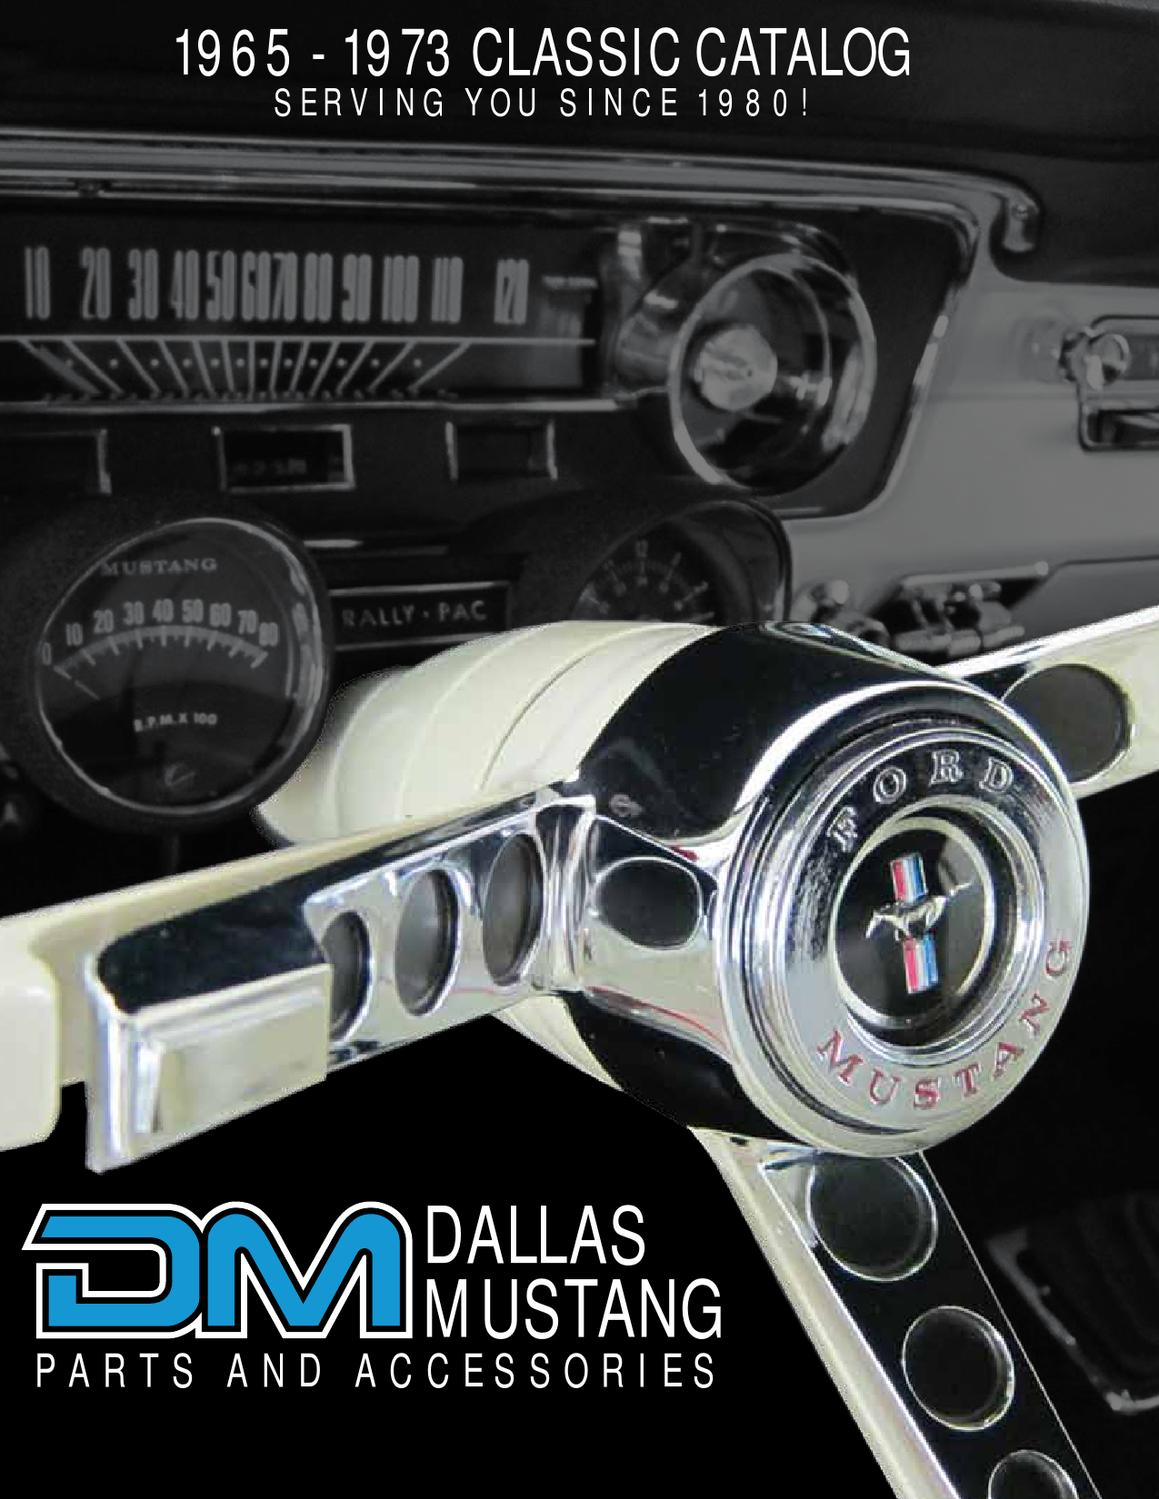 Dallas mustang classic parts catalog by tommie runner issuu